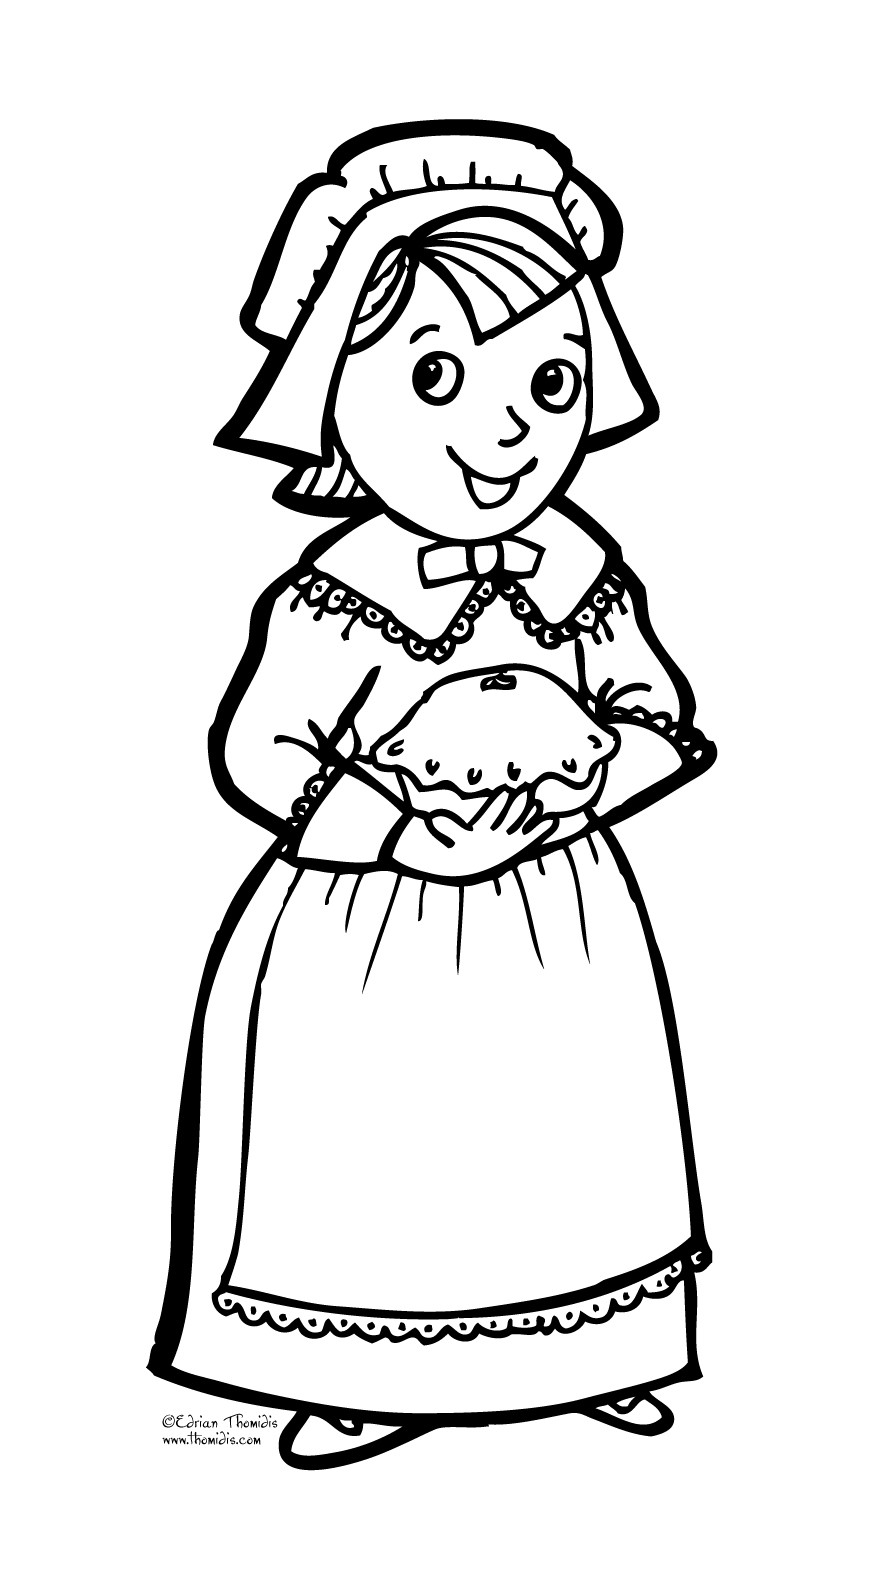 Thanksgiving Pilgrim Girl Coloring Pages  Children s Publishing Blogs Post from Blog TENENGO